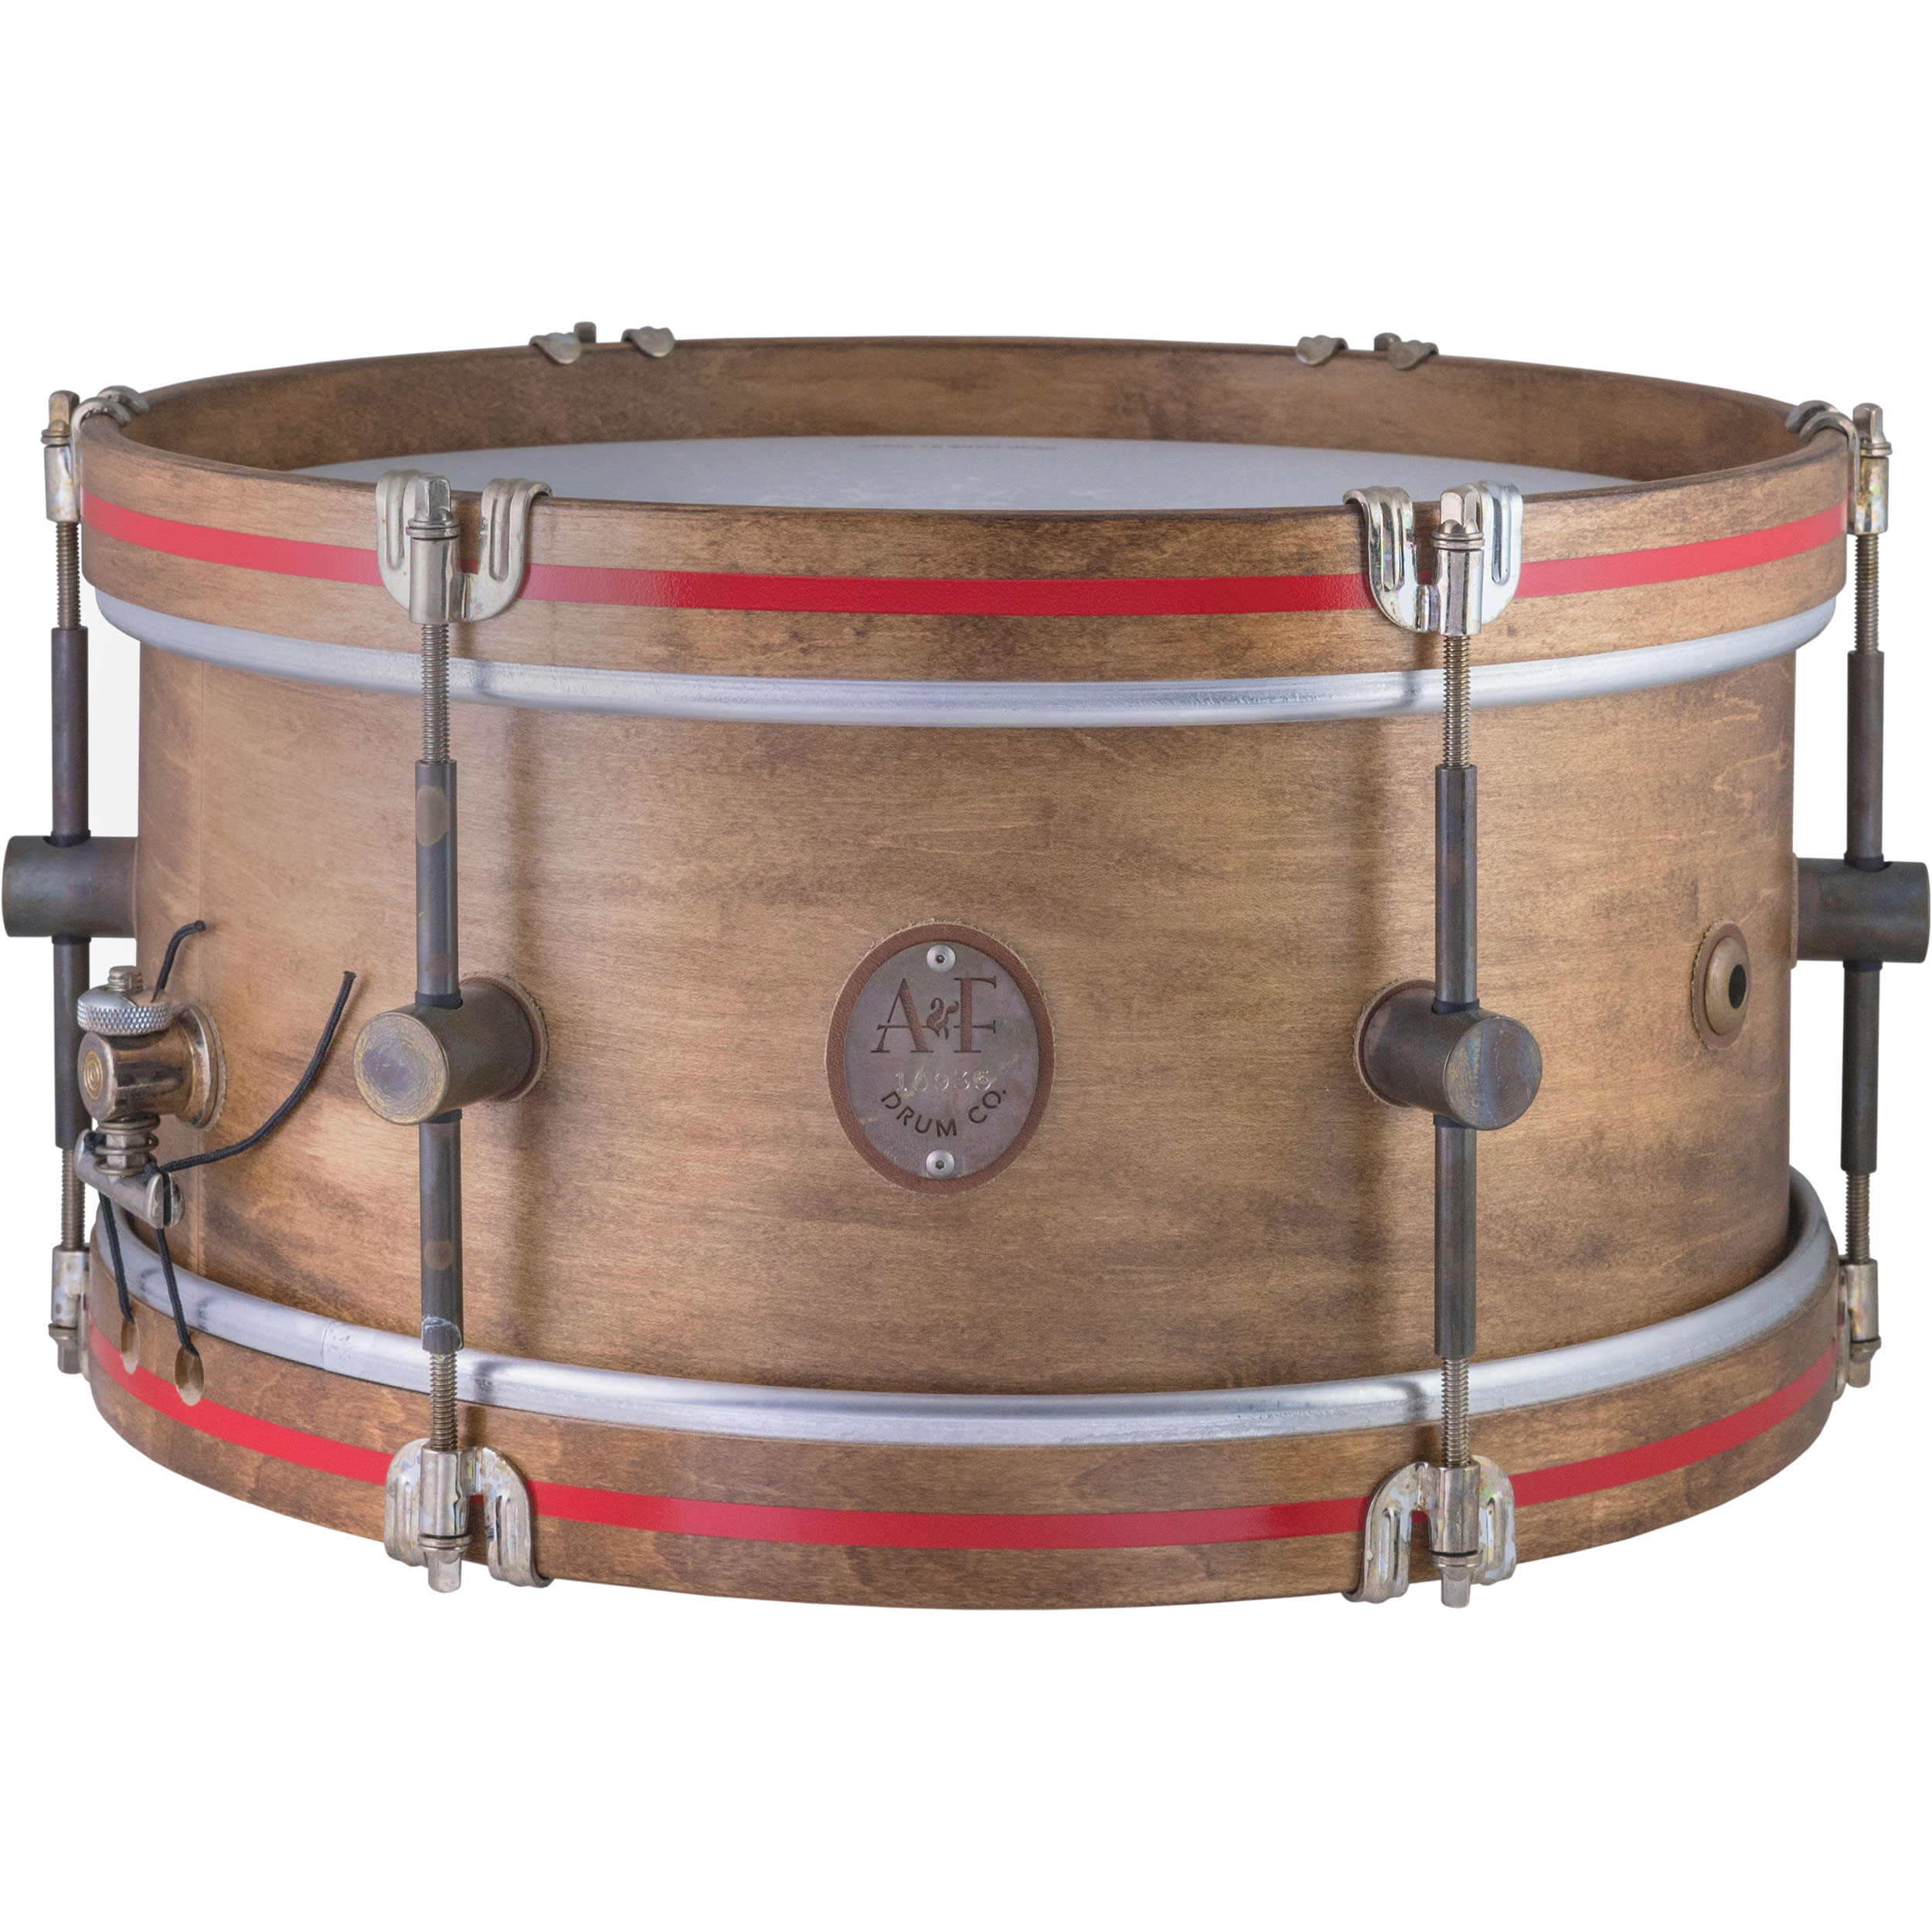 "A&F Drum Co. 6.5"" x 14"" Whiskey Maple Field Snare Drum"